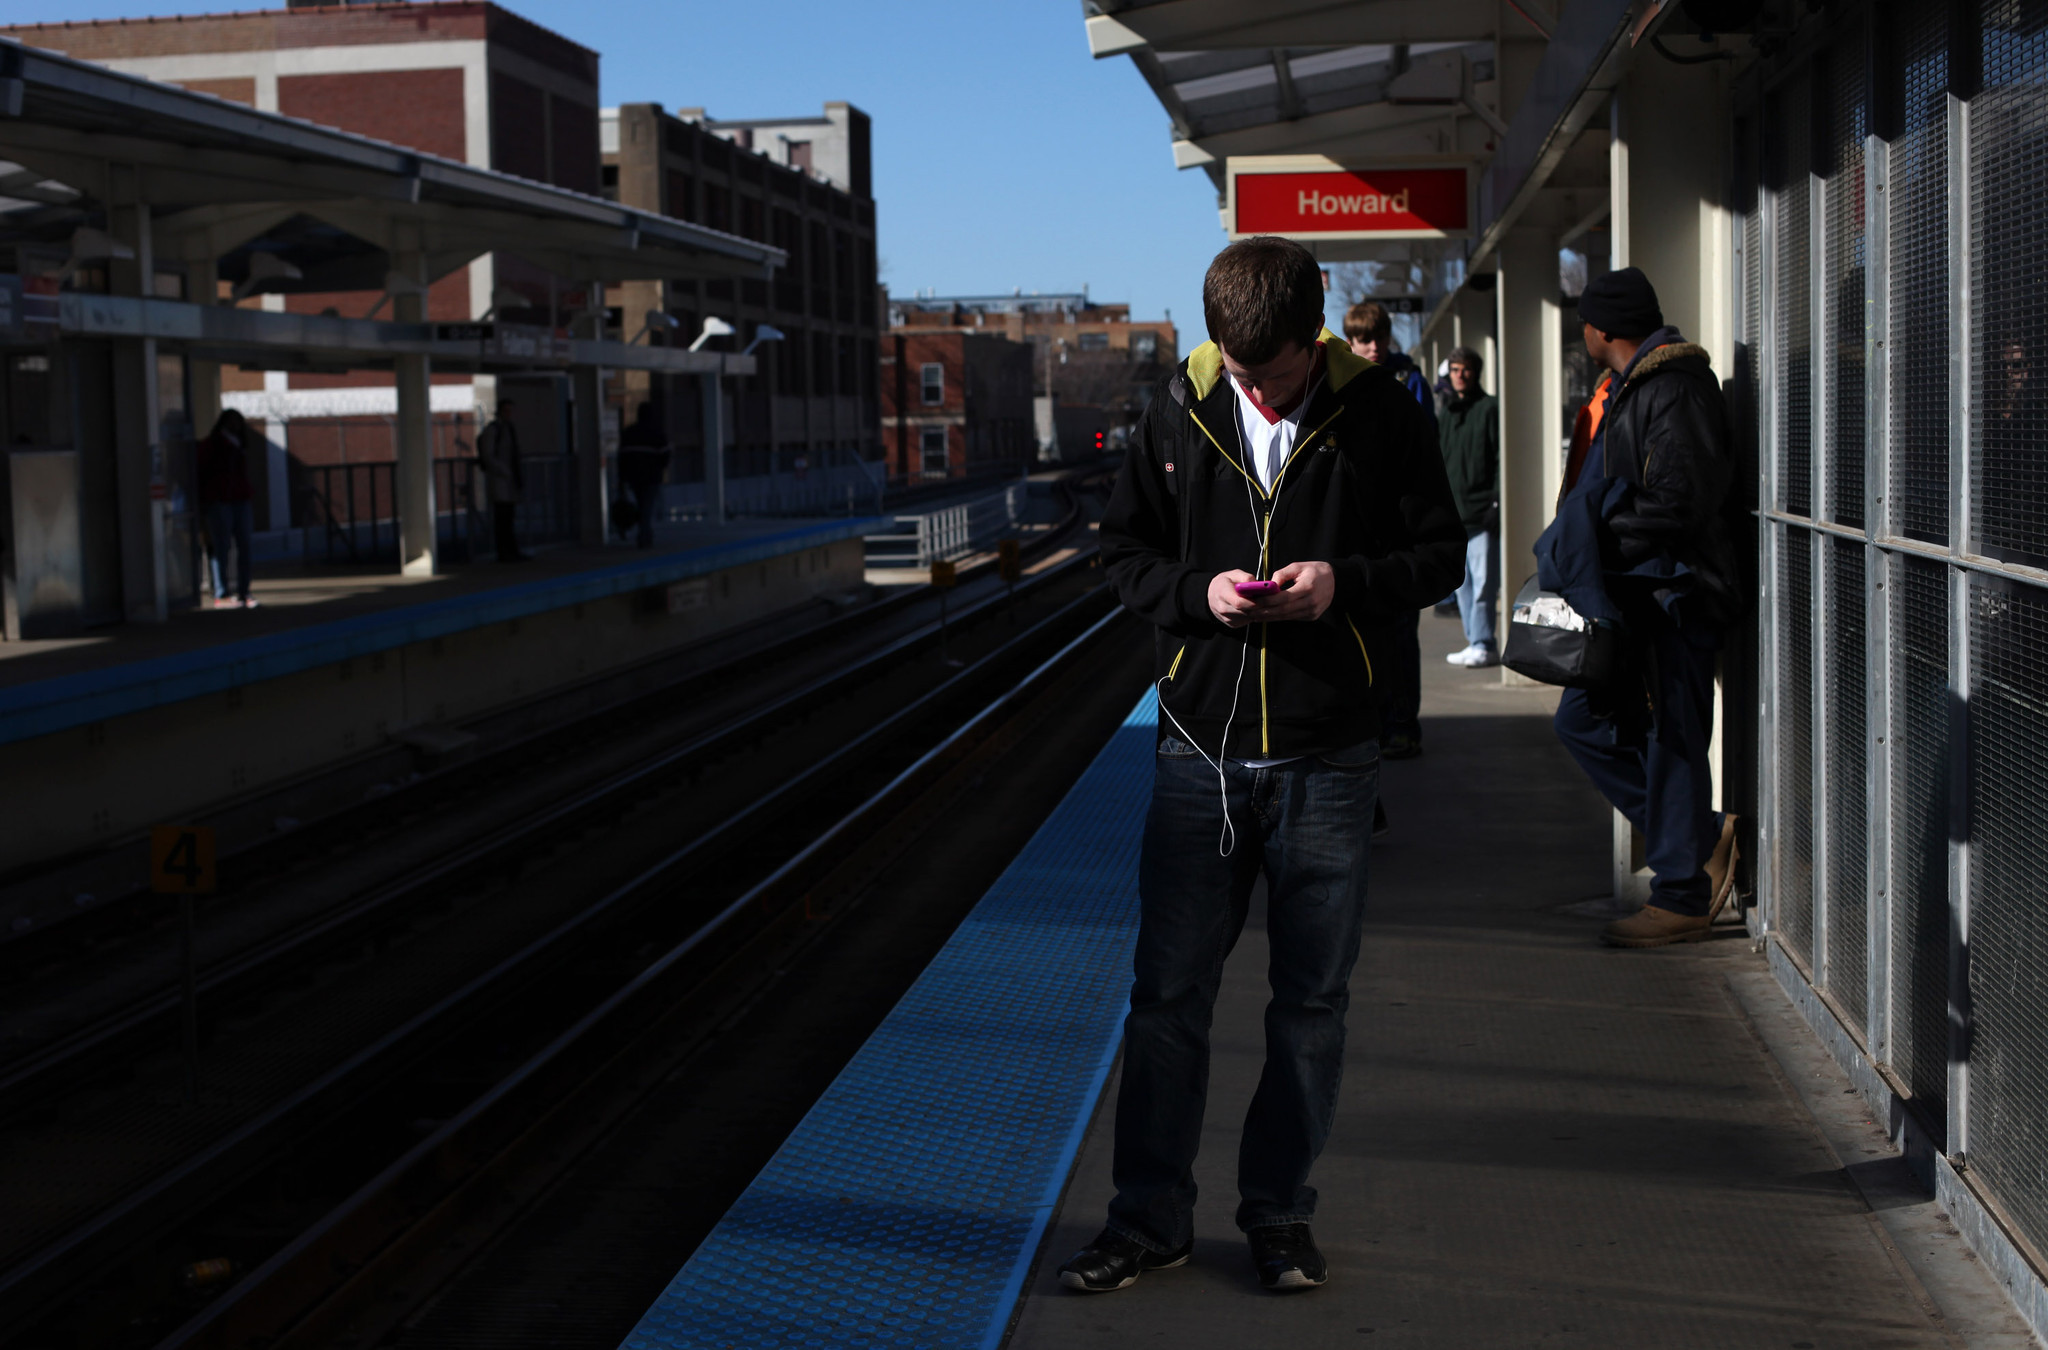 CTA quietly tested controversial sensor technology